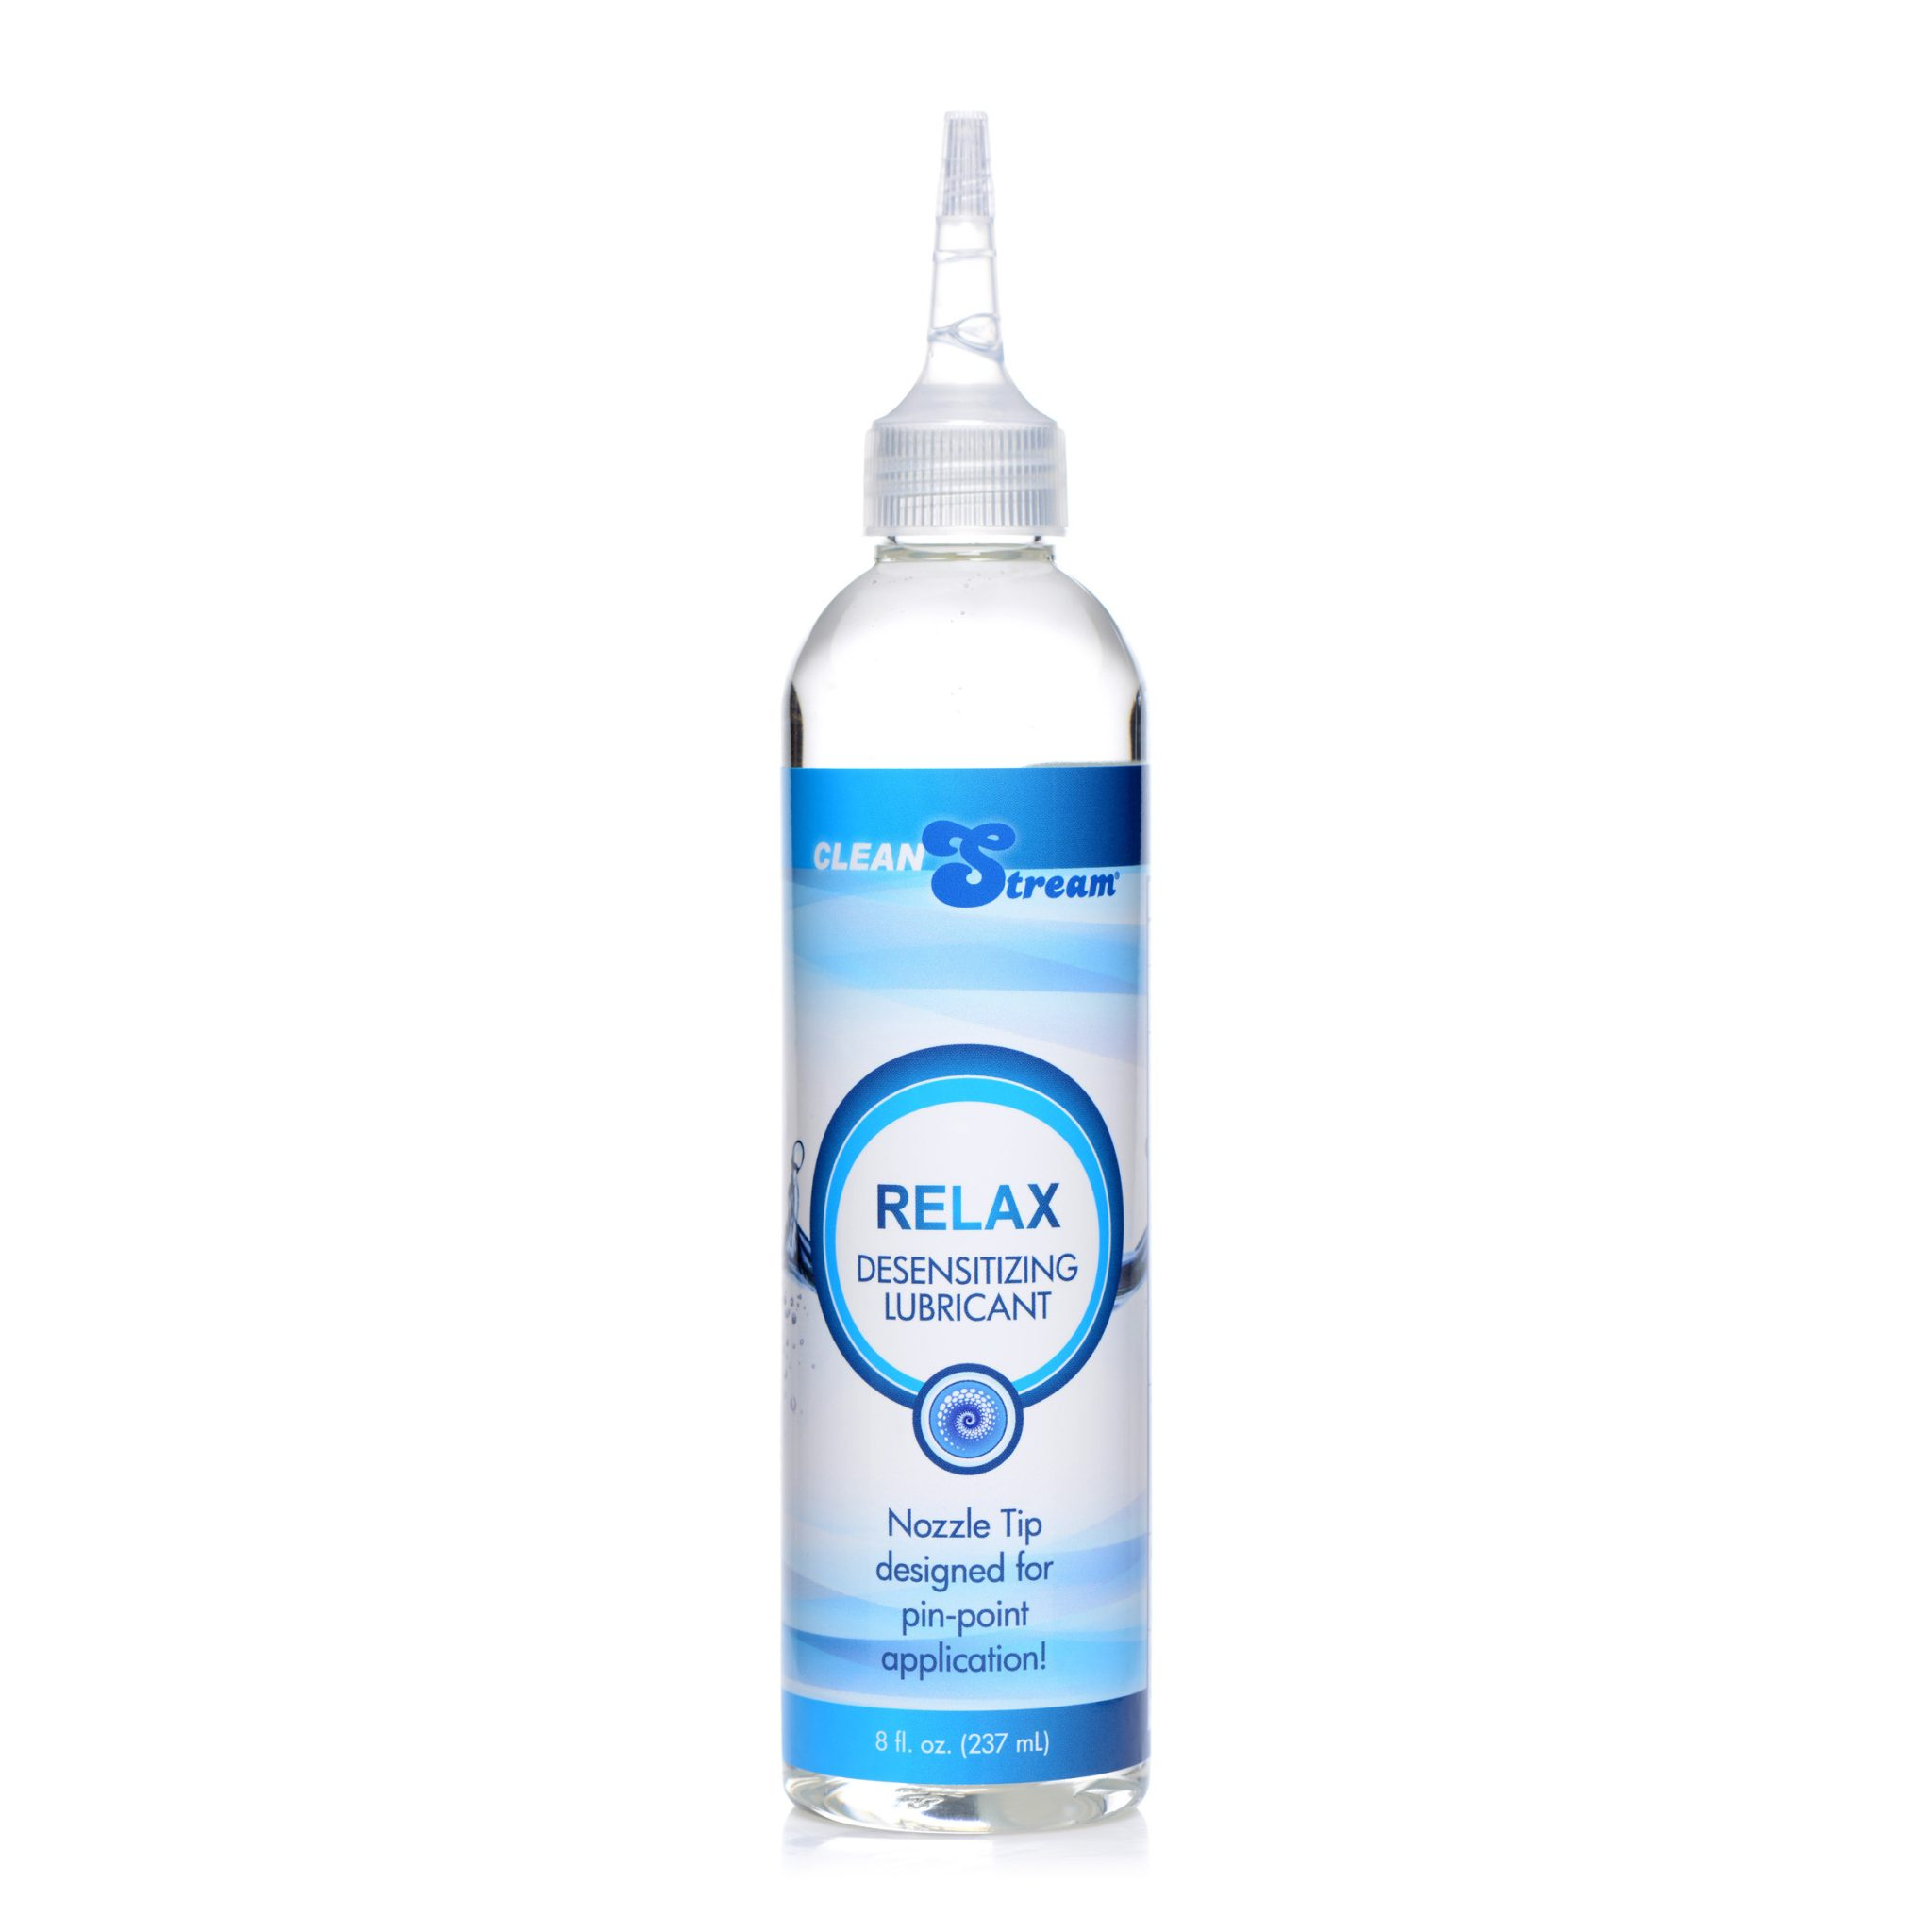 Relax Desensitizing Lubricant With Nozzle Tip – 8 oz.